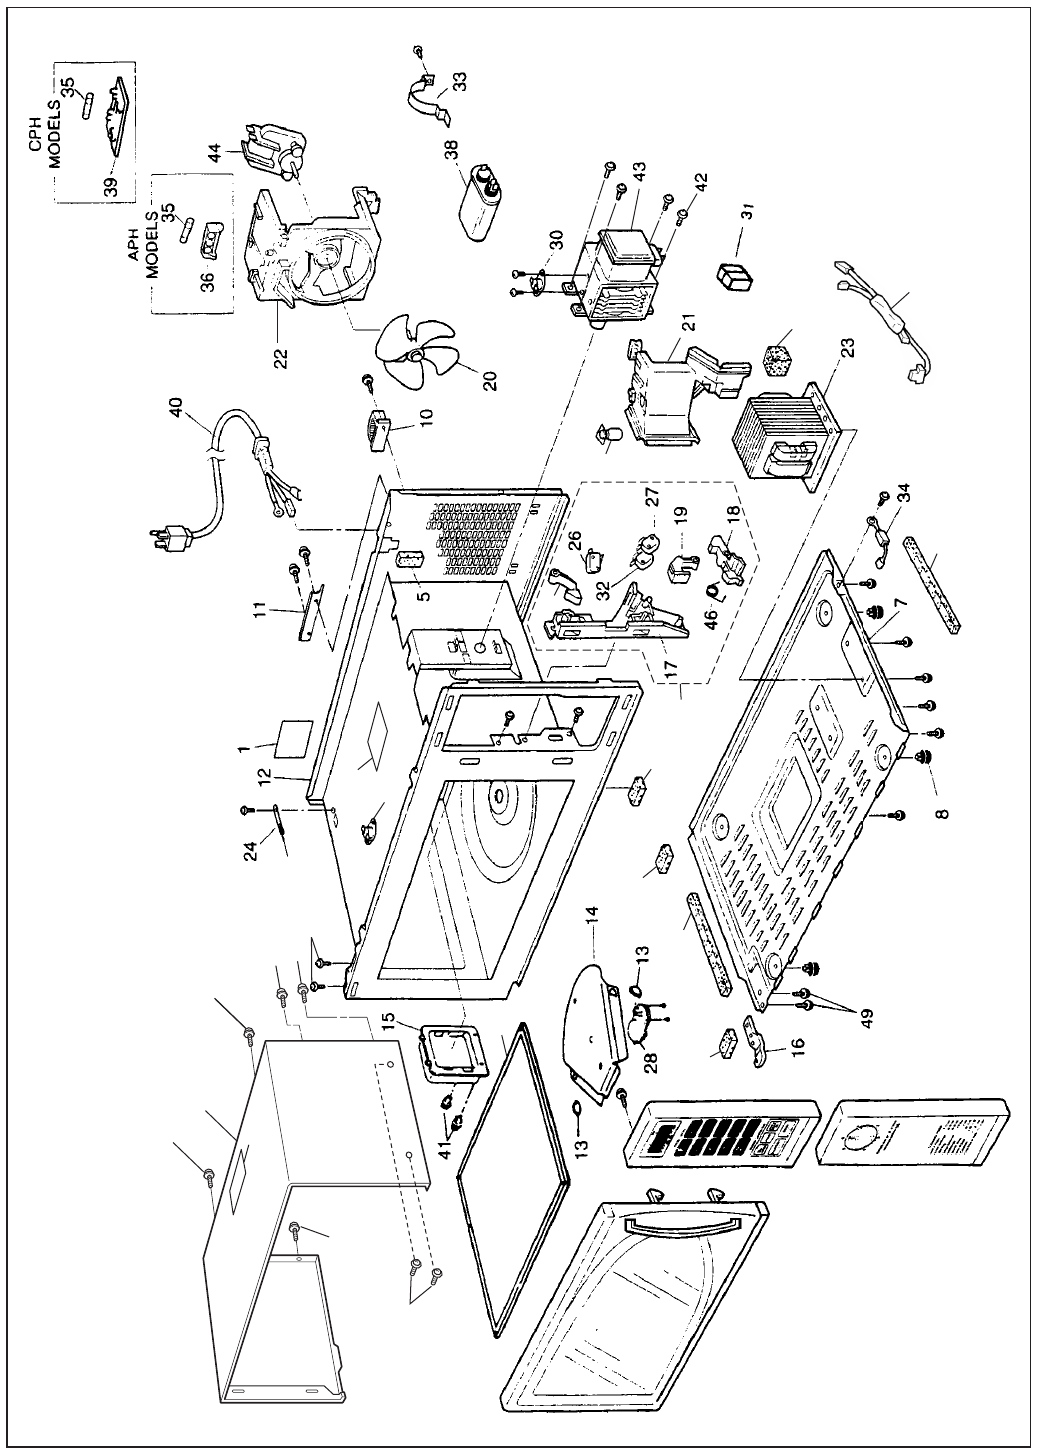 Page 2 of Panasonic Microwave Oven NE-1024F User Guide